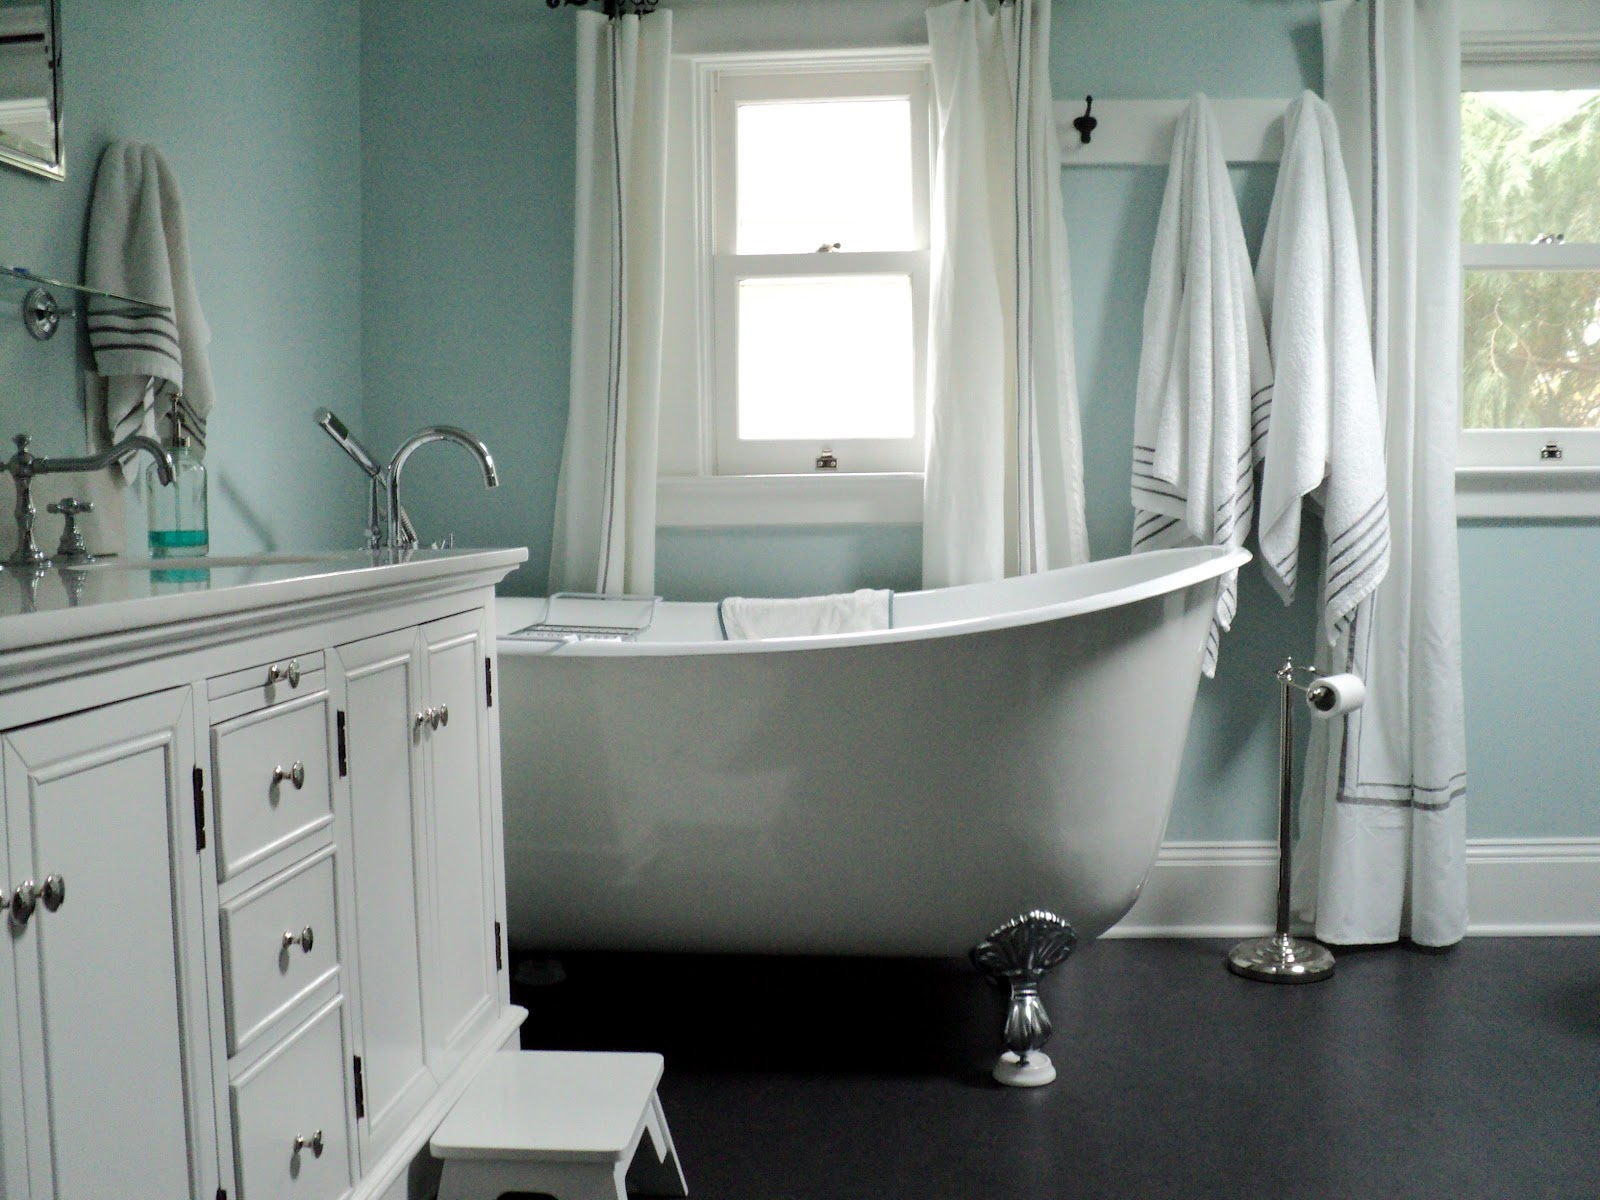 Living In The Rain Garden: Bathroom Renovation